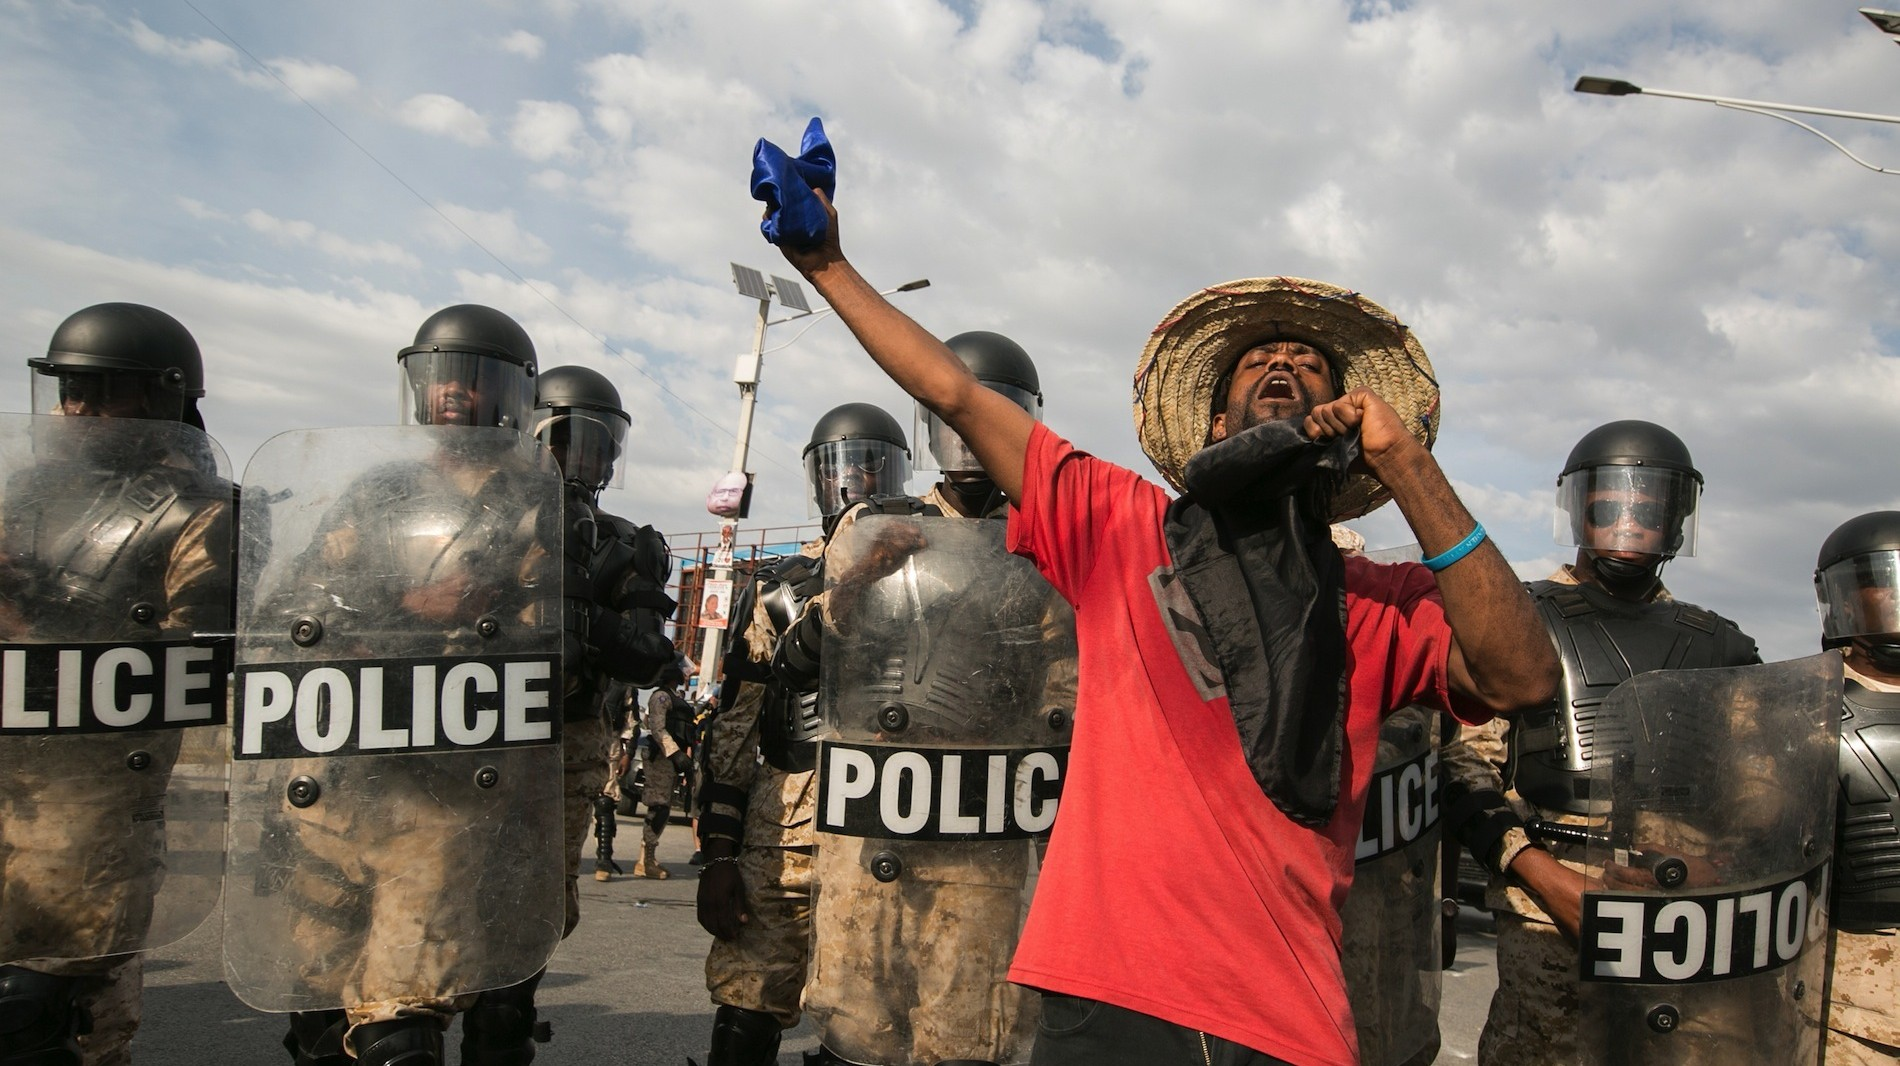 Man Stoned to Death by Angry Protesters as Haiti's Political Crisis Intensifies